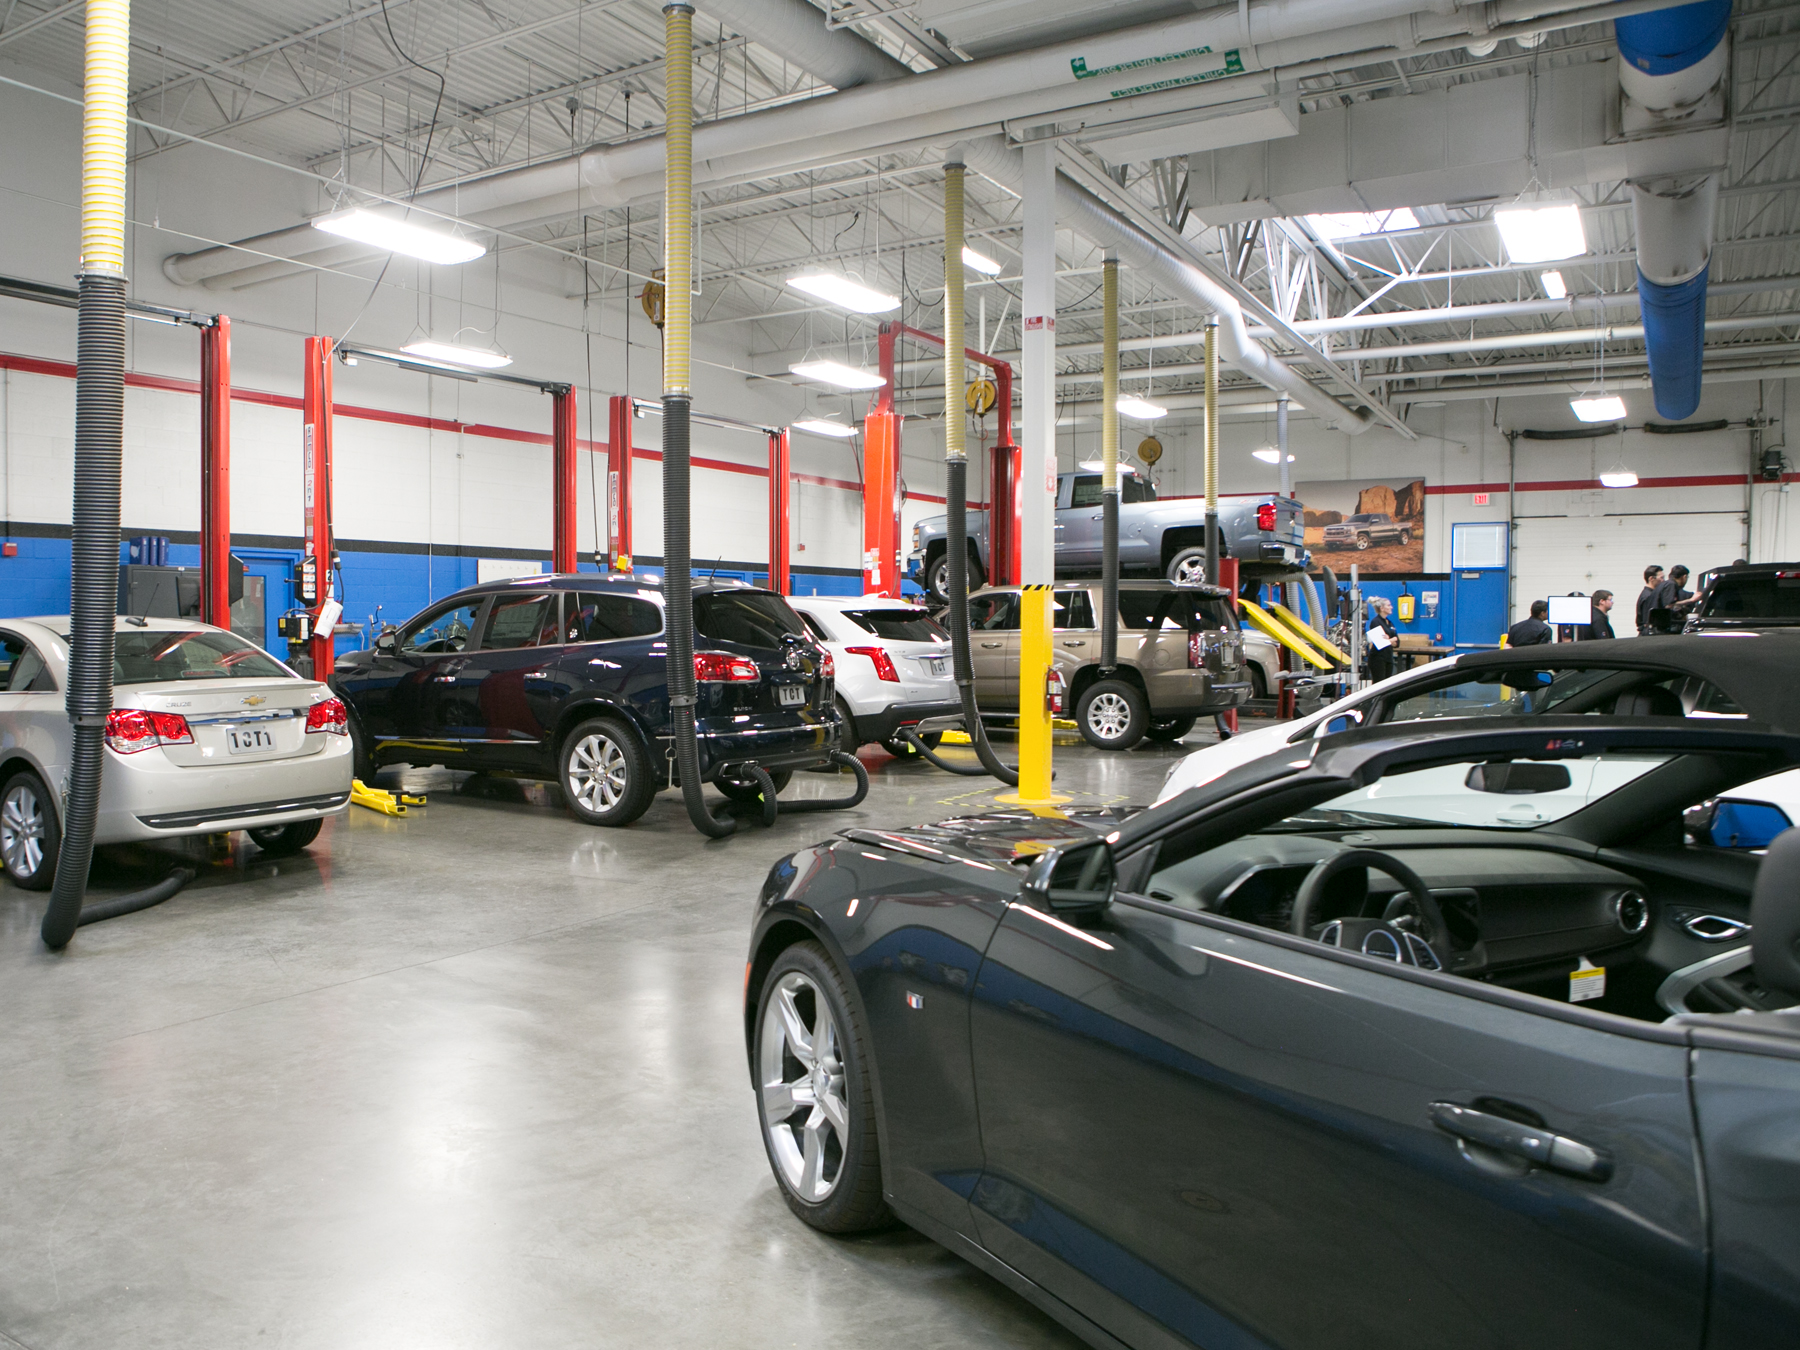 Wide angle photo of cars on lifts in the GM lab